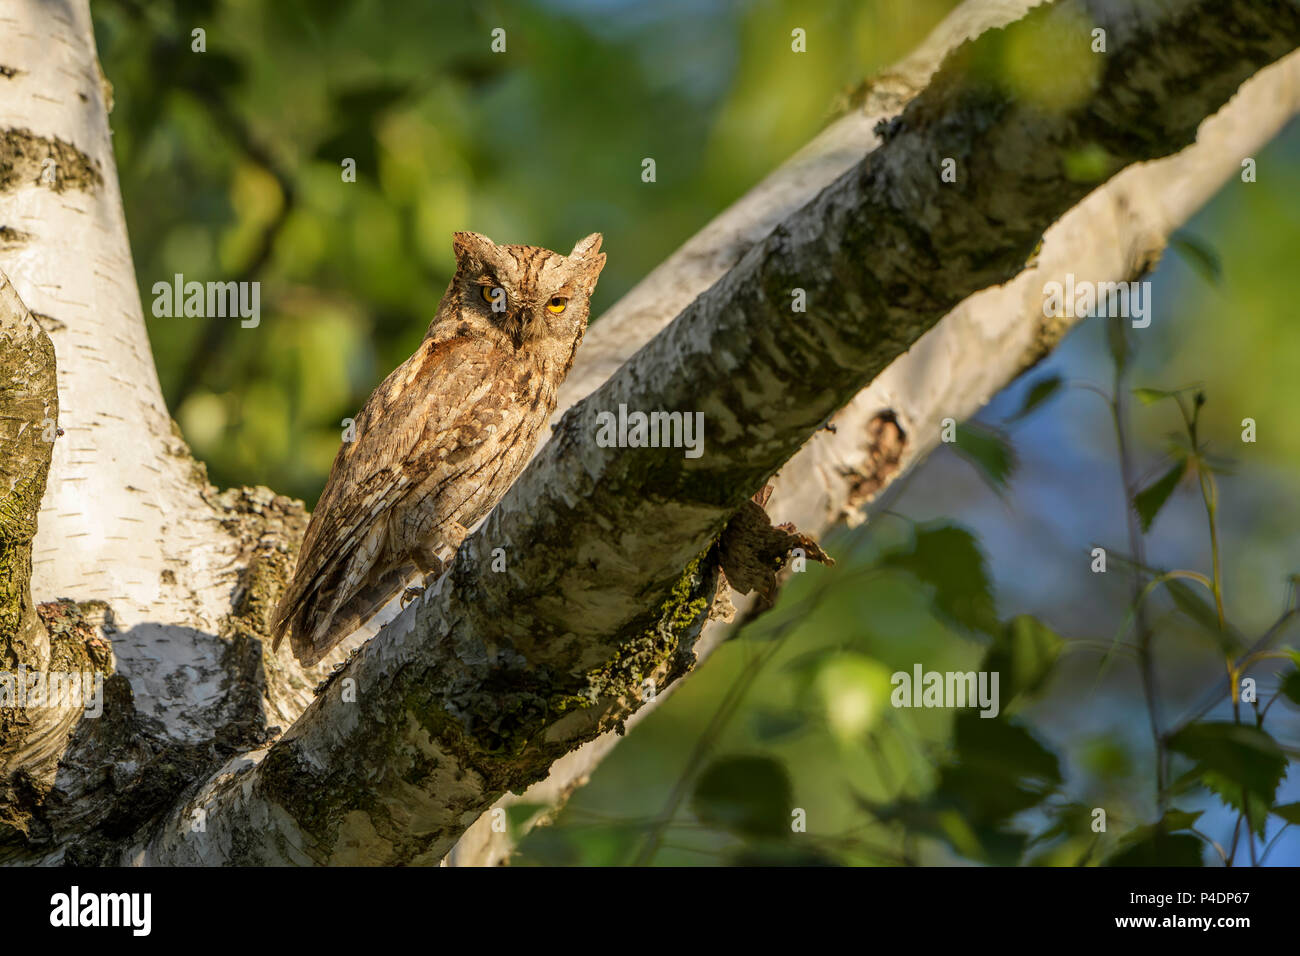 Scops Owl - Otus scops, beautiful small owl from European forests and woodlands, Eastern Rodope Mountains, Bulgaria. - Stock Image